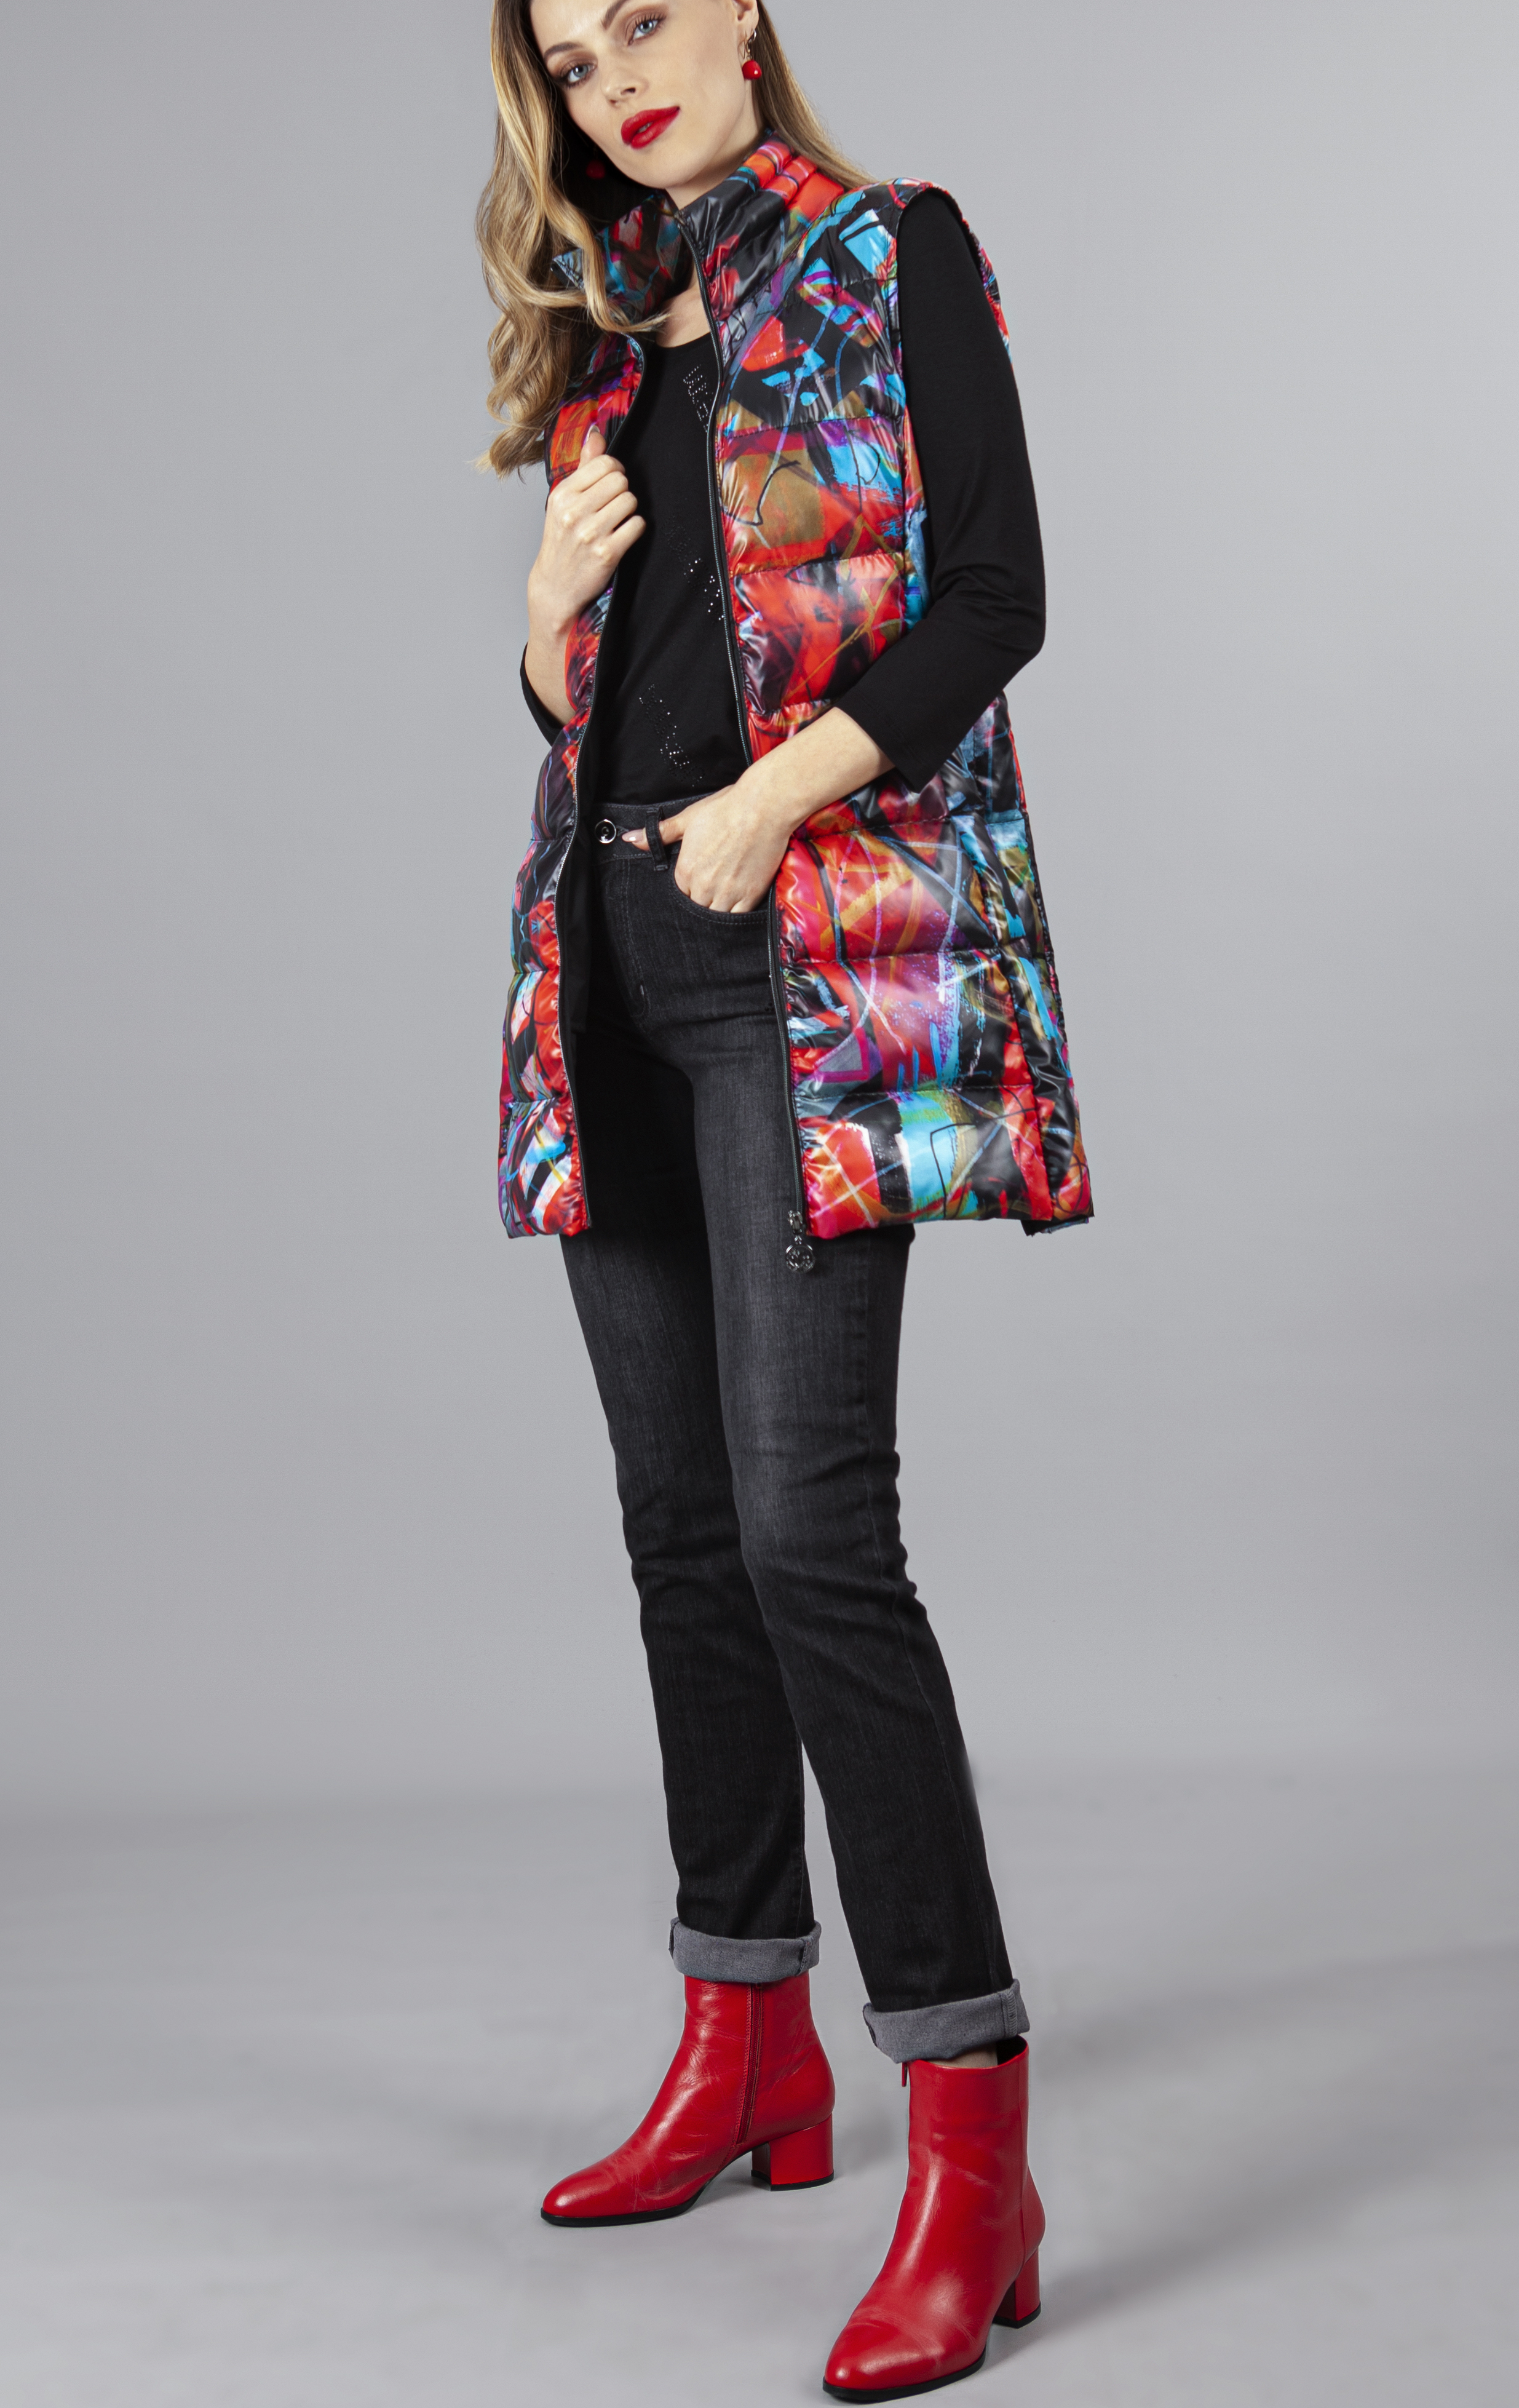 Simply Art Dolcezza: Red 3 Graffiti Abstract Art Long Vest (1 Left!) Dolcezza_simplyart_70801